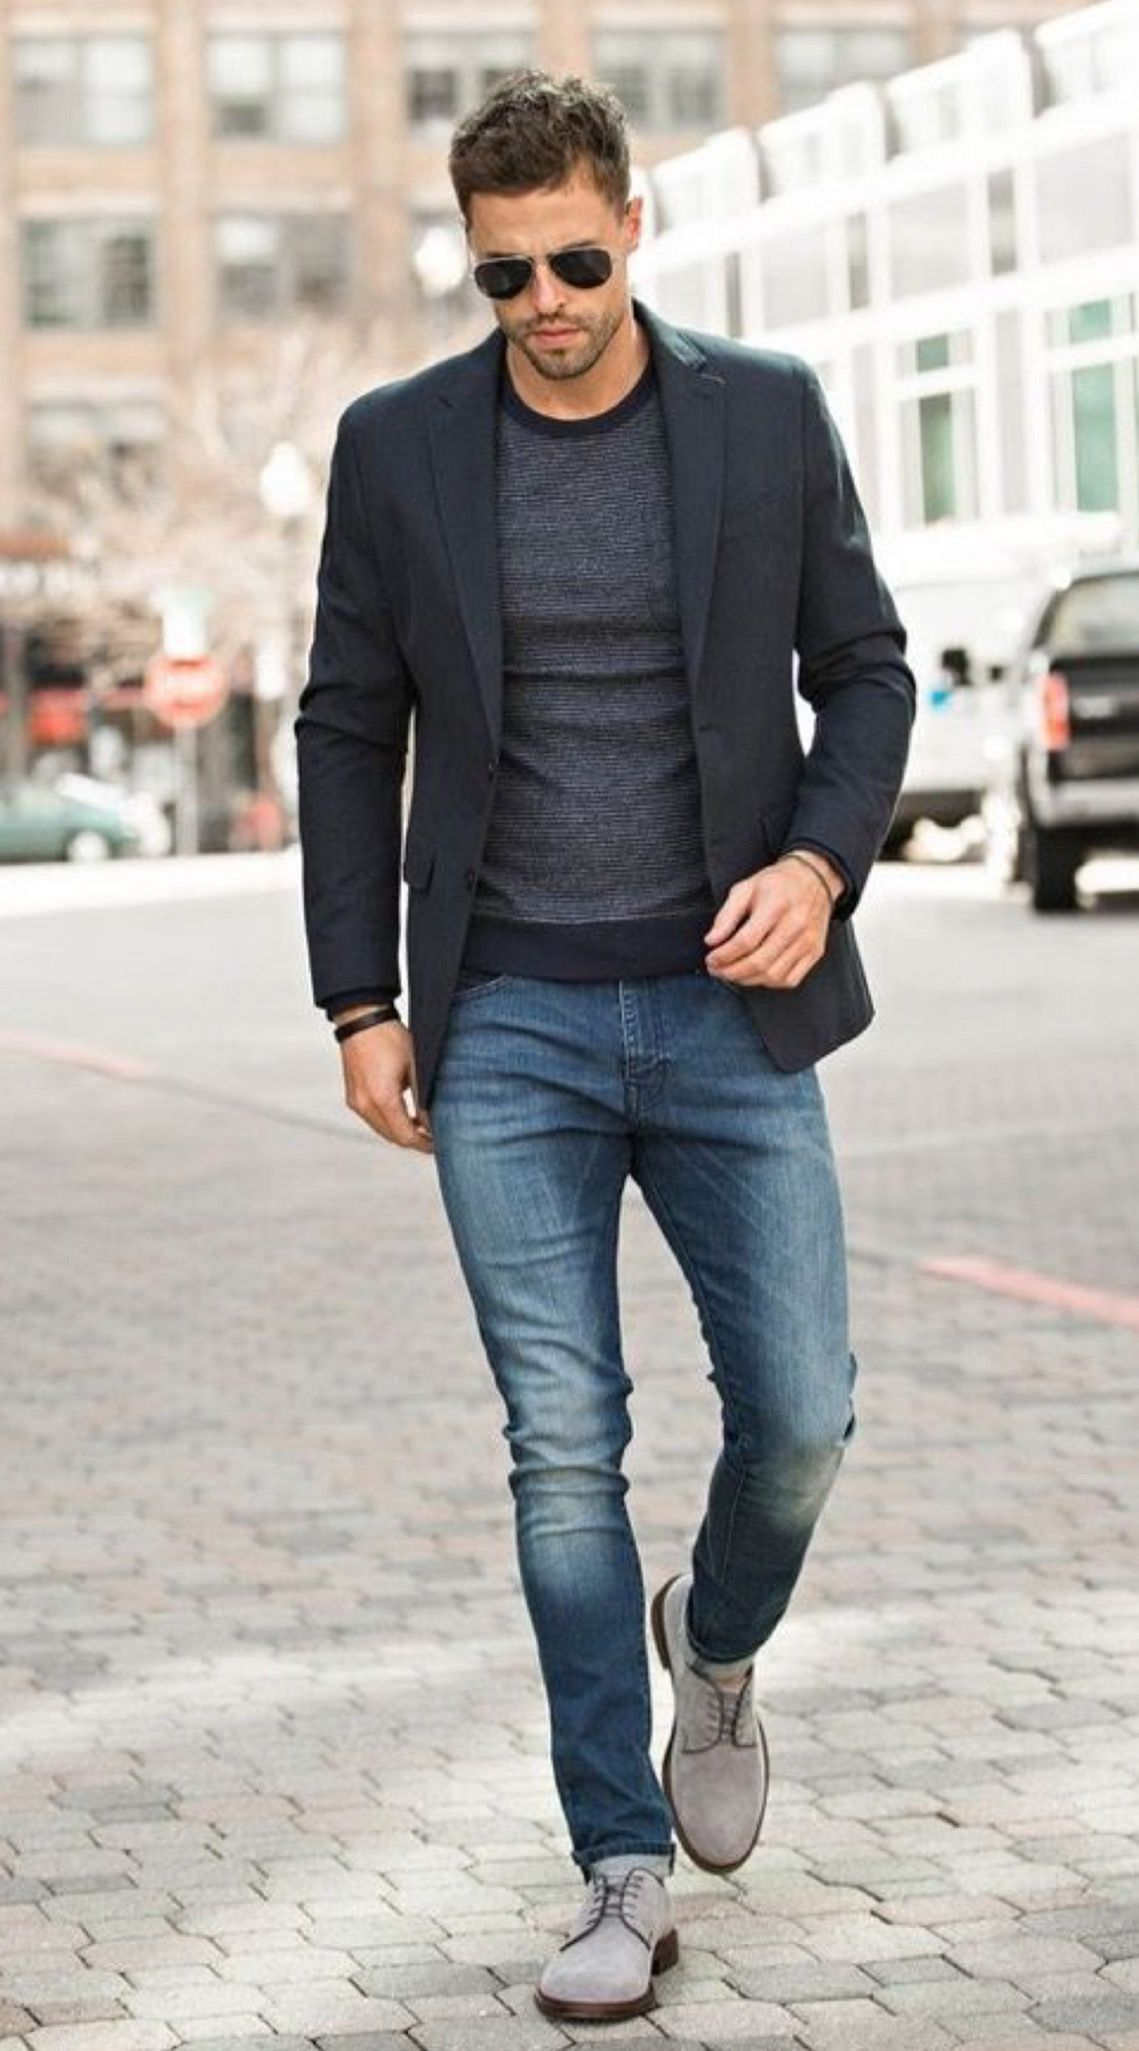 44+ Nice outfits for men ideas info